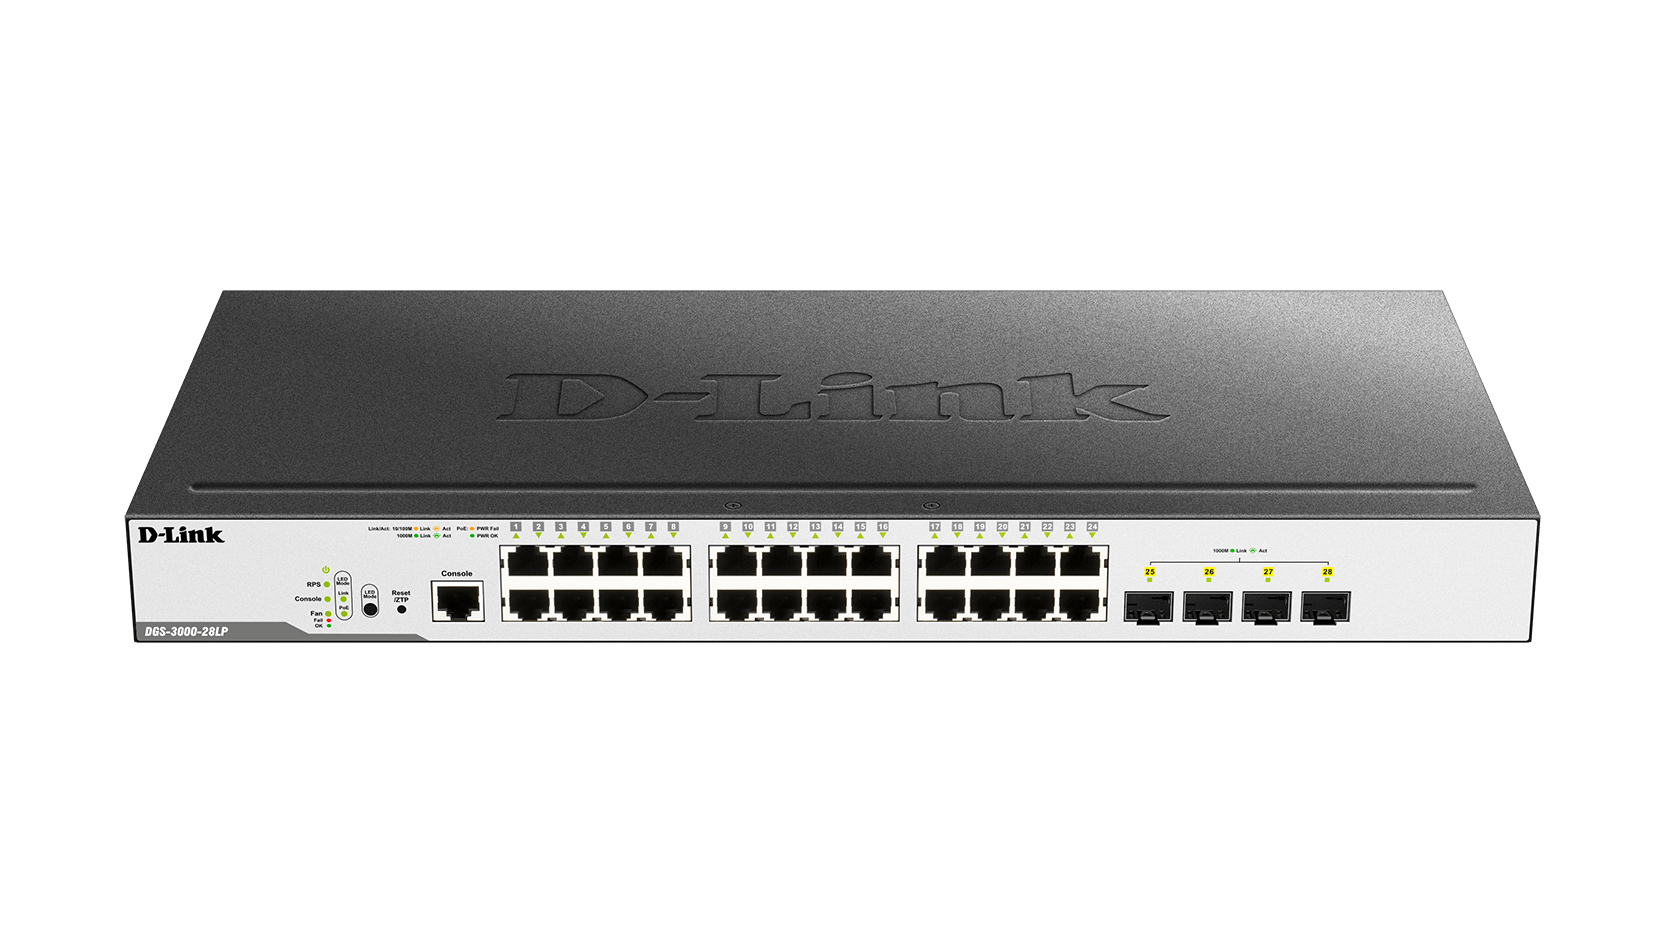 D-LINK DGS-3000-28LP MANAGED L2 GIGABIT ETHERNET POWER OVER (POE) 19U BLACK NETWORK SWITCH